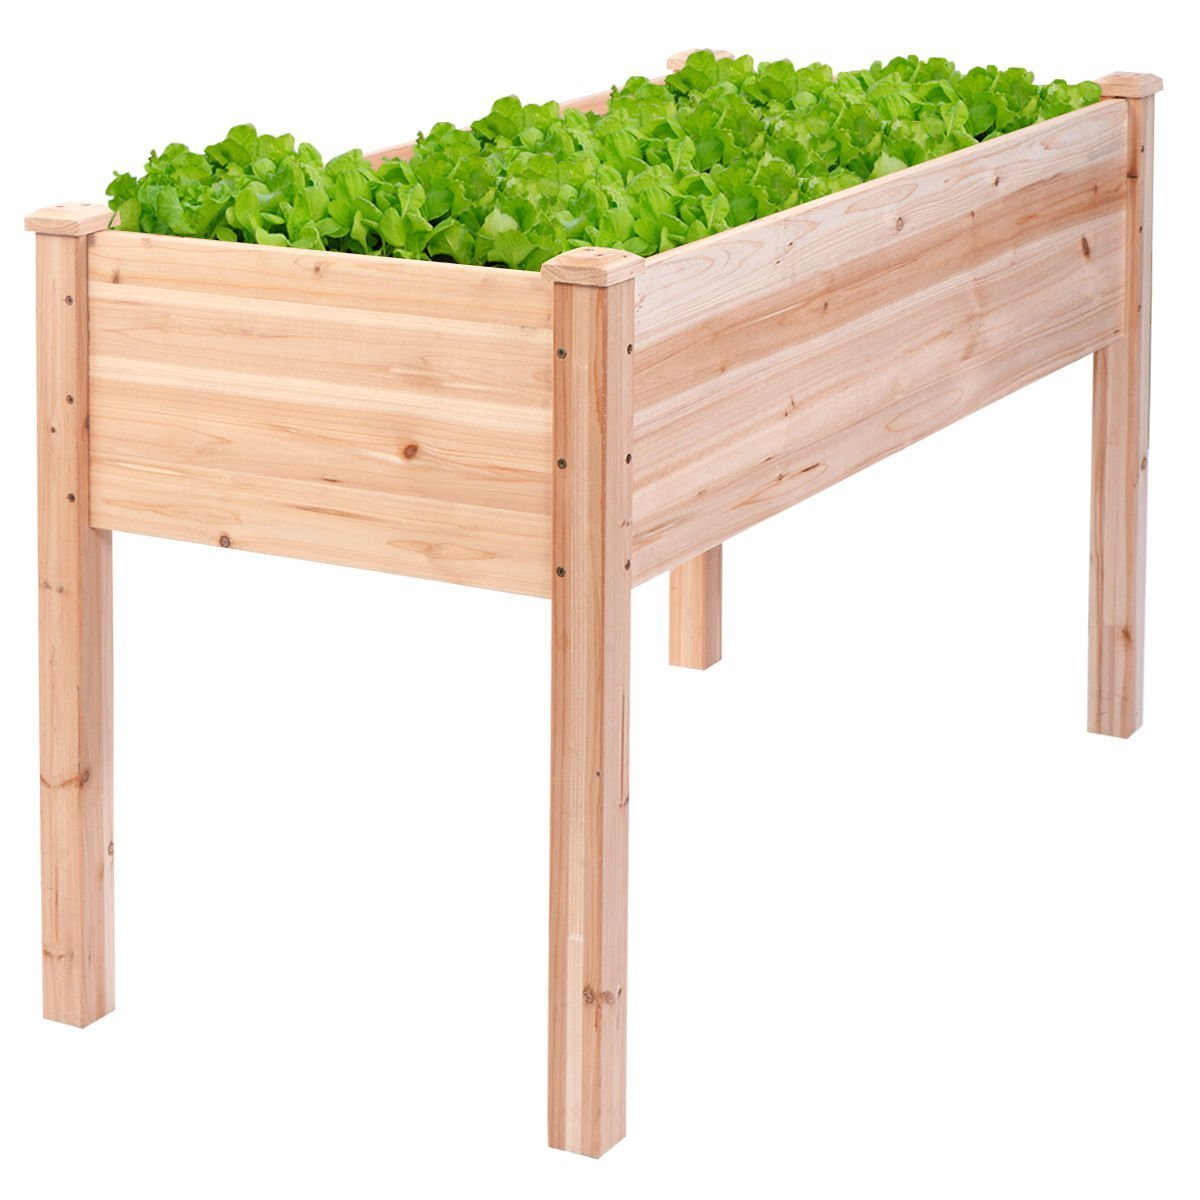 Giantex Raised Garden Bed Vegetables Fruits Grow Planter Patio Yard Potato Onion Greenes Herb Flower Heavy Duty Wooden Frame Gardening Planting Beds Durable Outdoor Cedar Wood Elevated Planter by Giantex